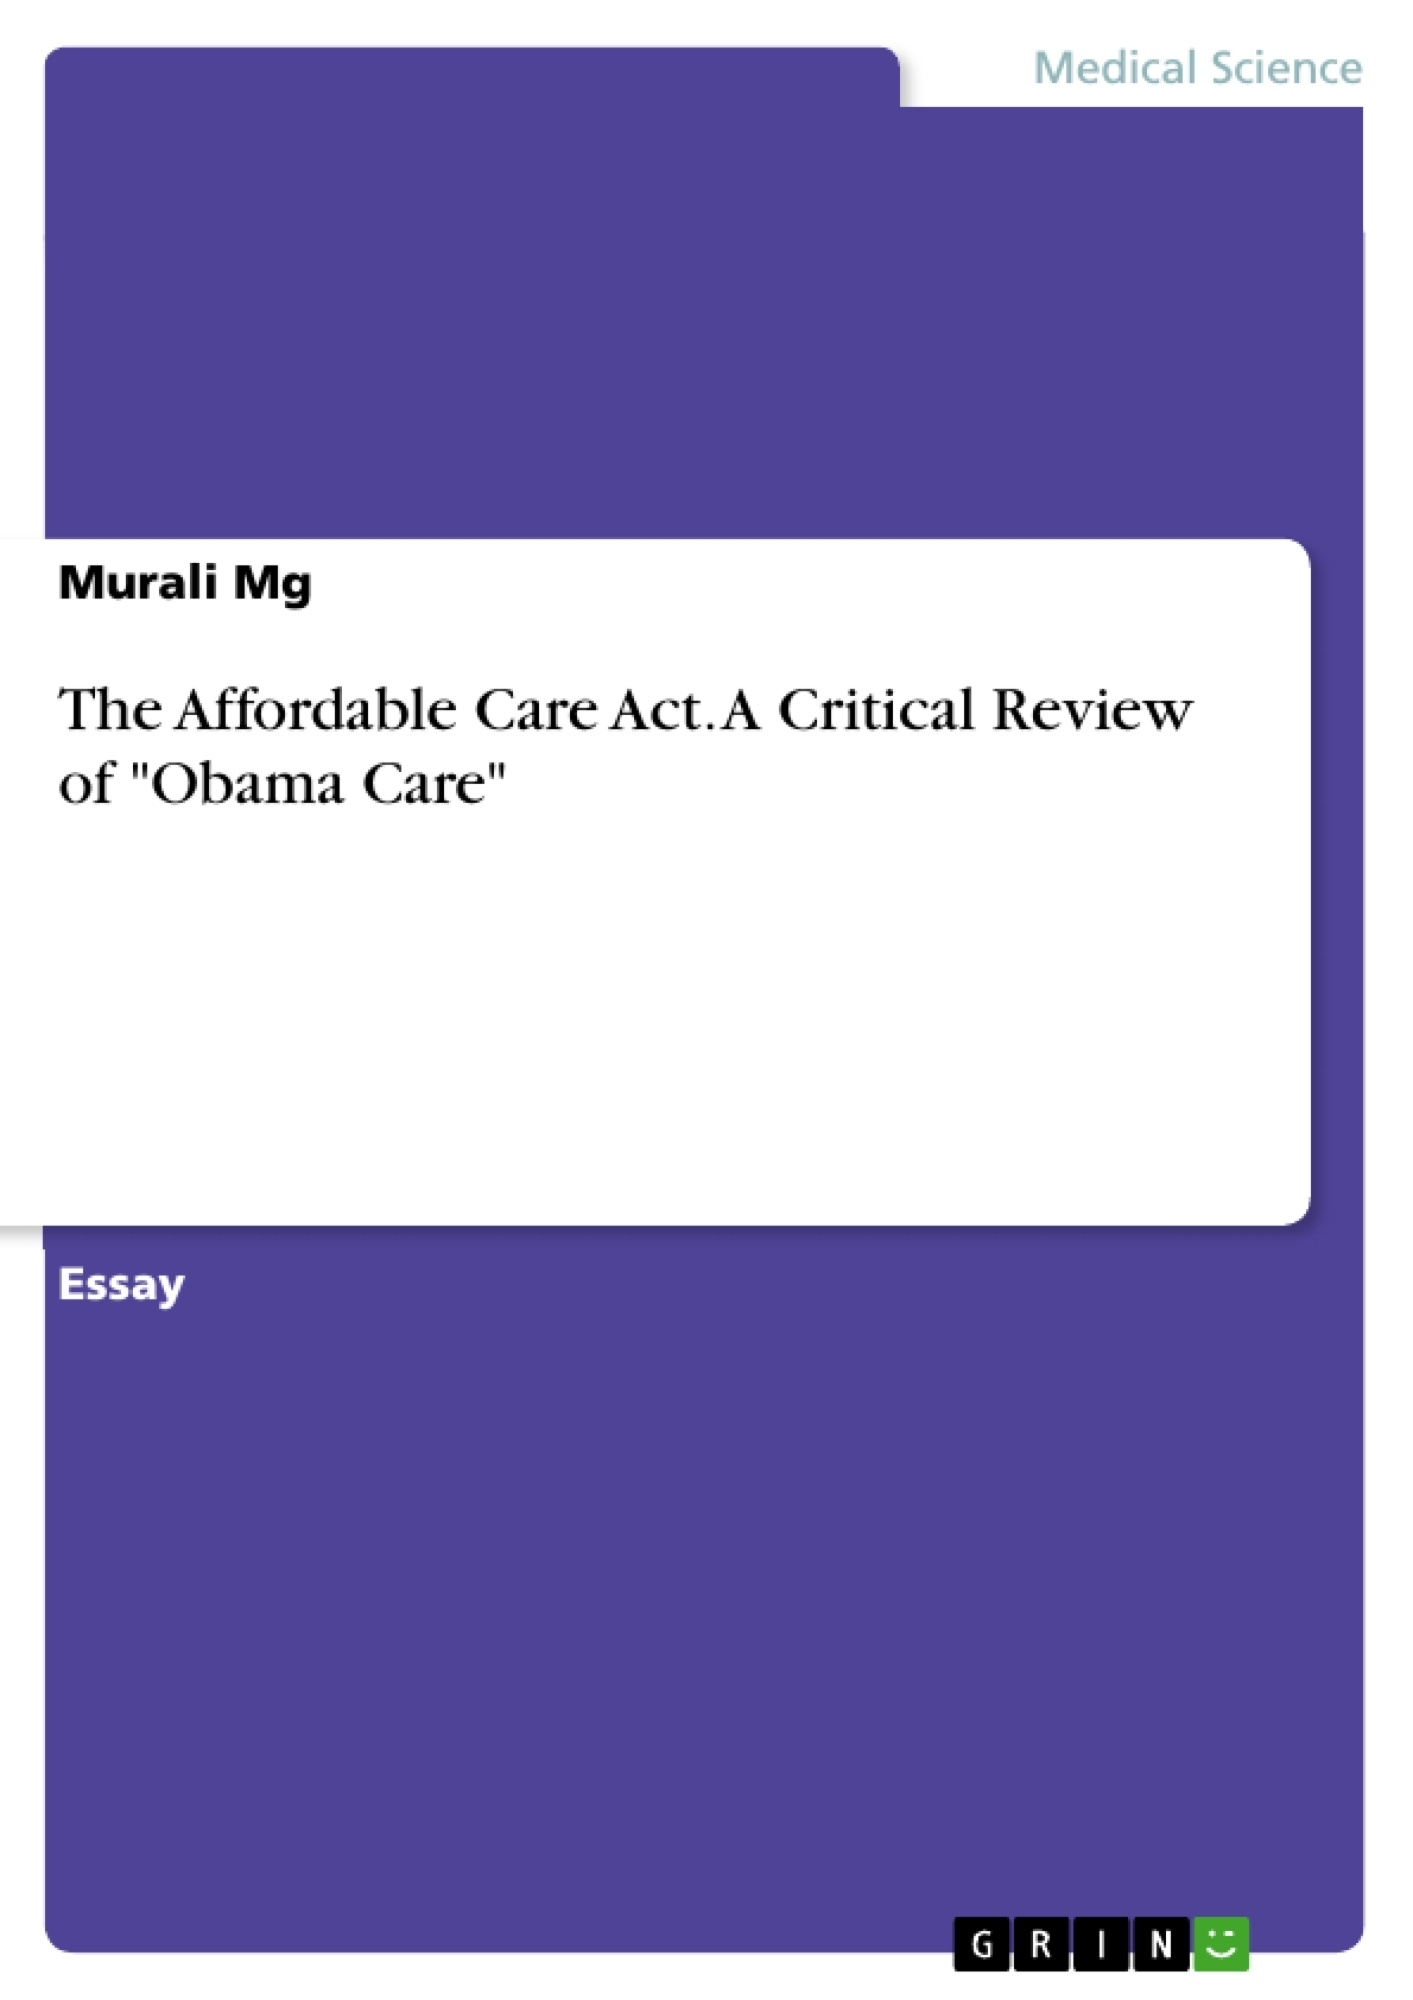 obamacare essay thesis